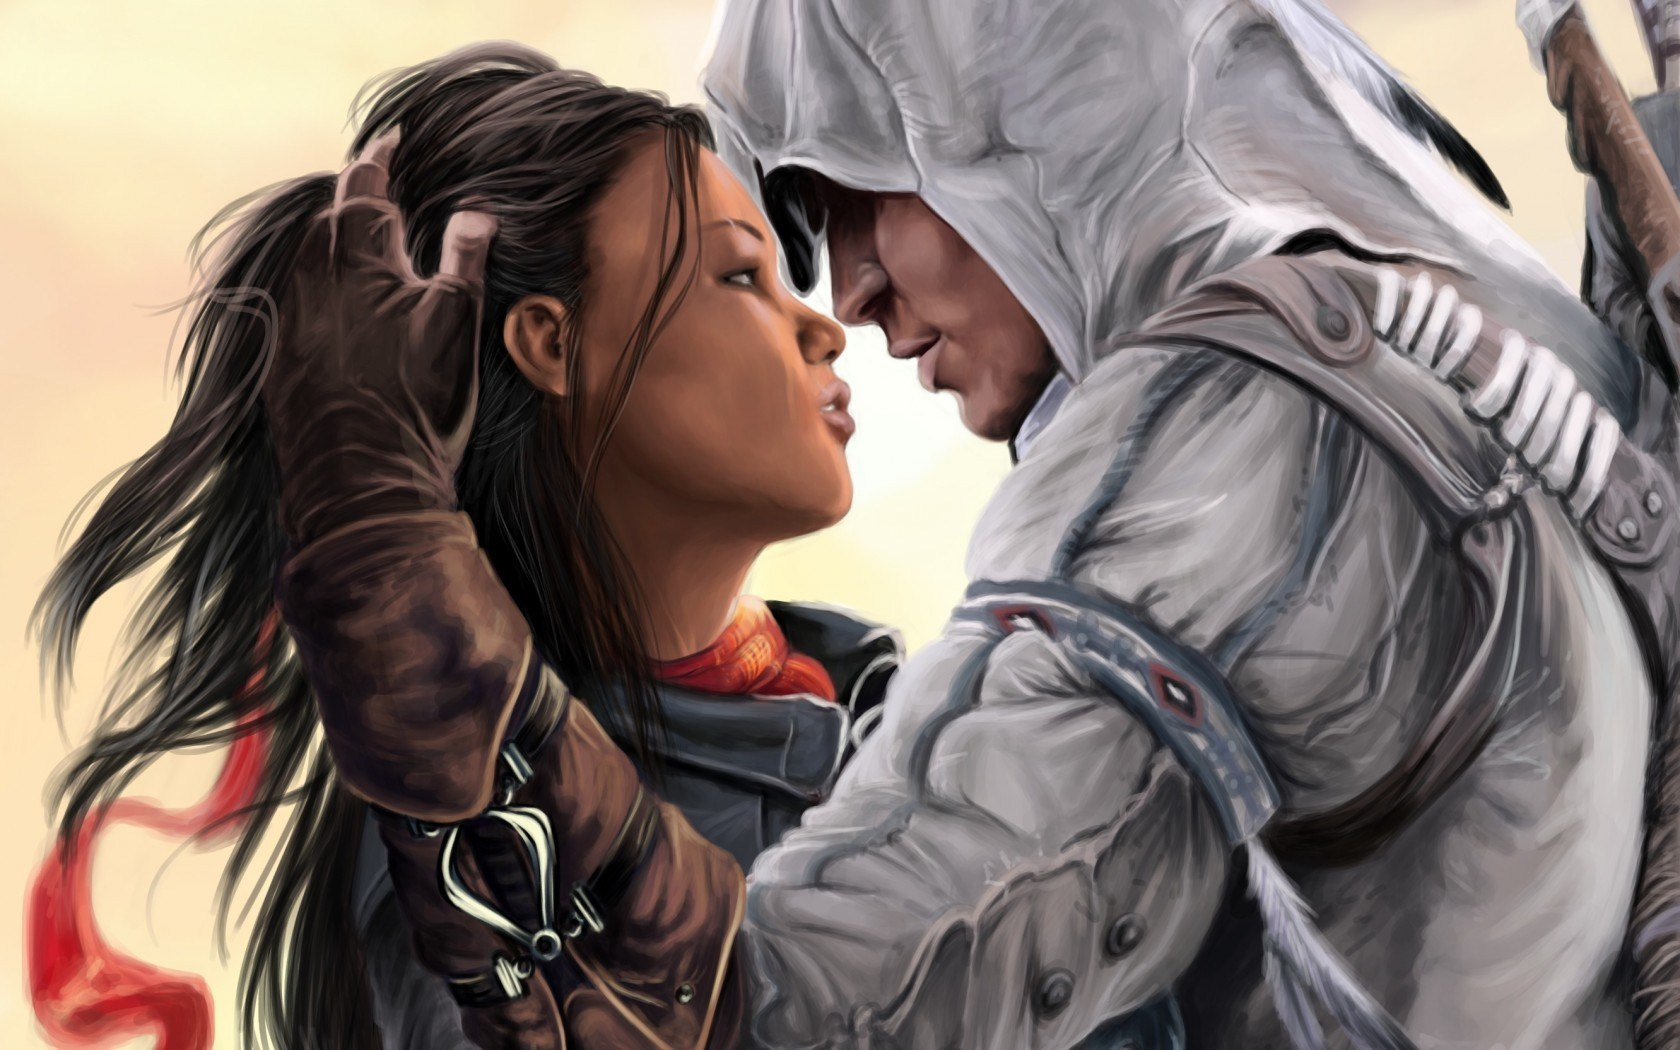 Connor Kenway and Aveline De Grandpre Artwork